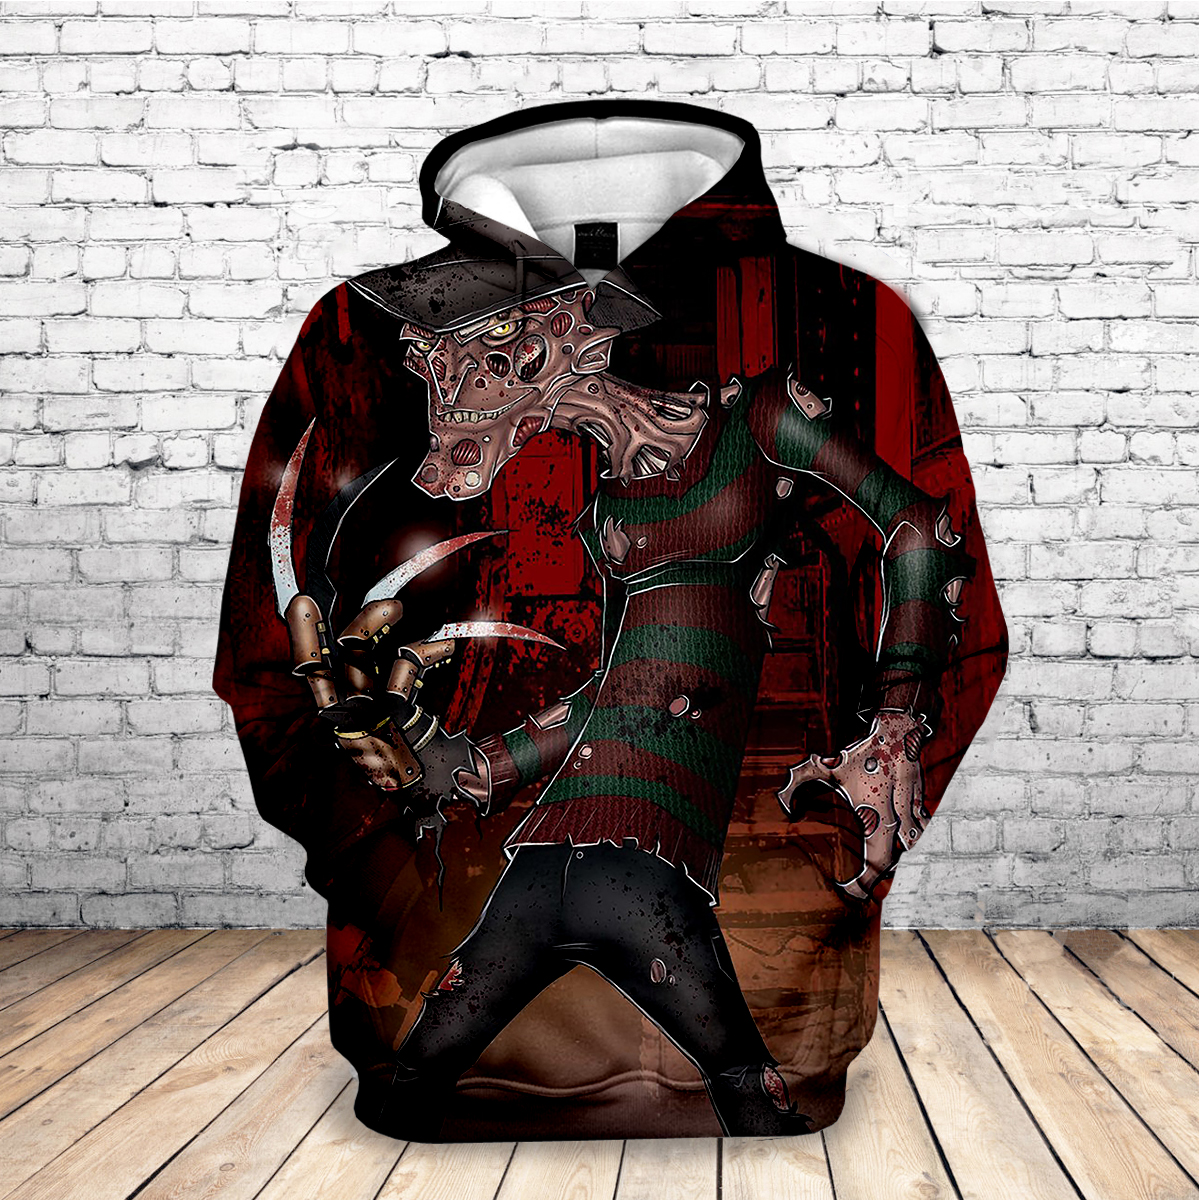 Hot 2019 Horror Michael Myers Mask Meet Jason Freddy 3D Printed Movie Sweatshirt Long Sleeve Streetwear Hoodies Drop Shipping